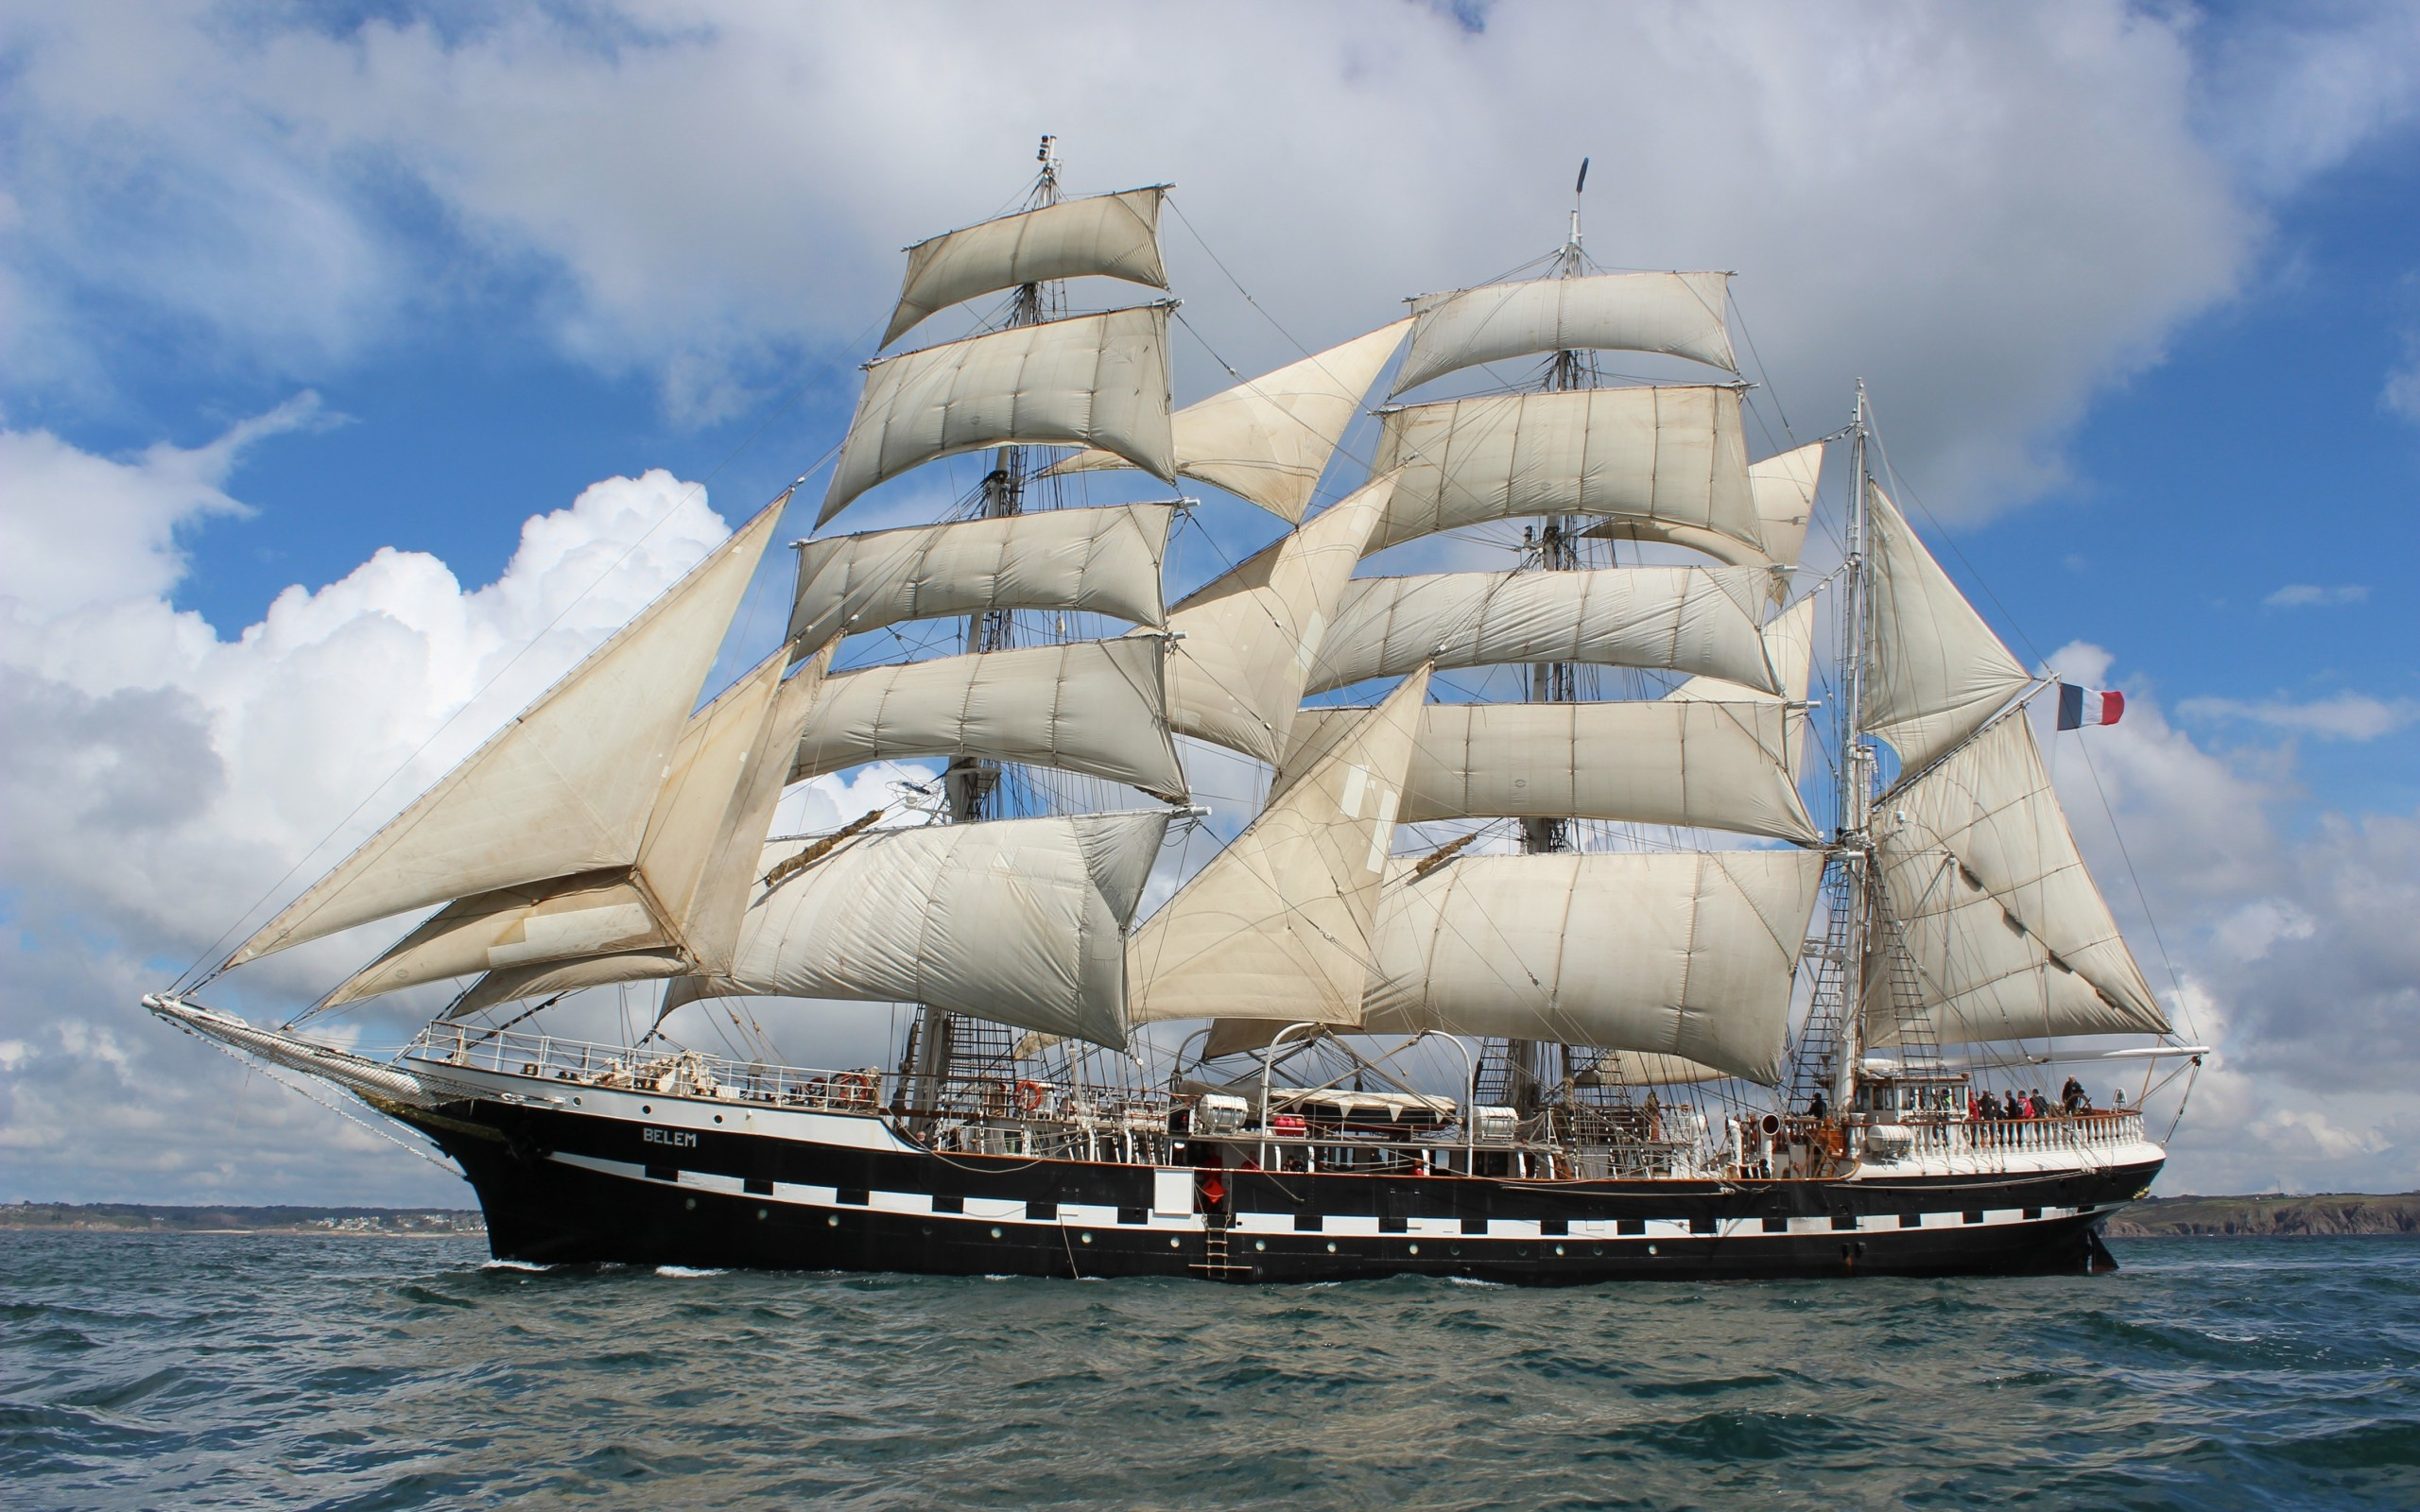 Sail Ship wallpaper | 2560x1600 | 95180 | WallpaperUP